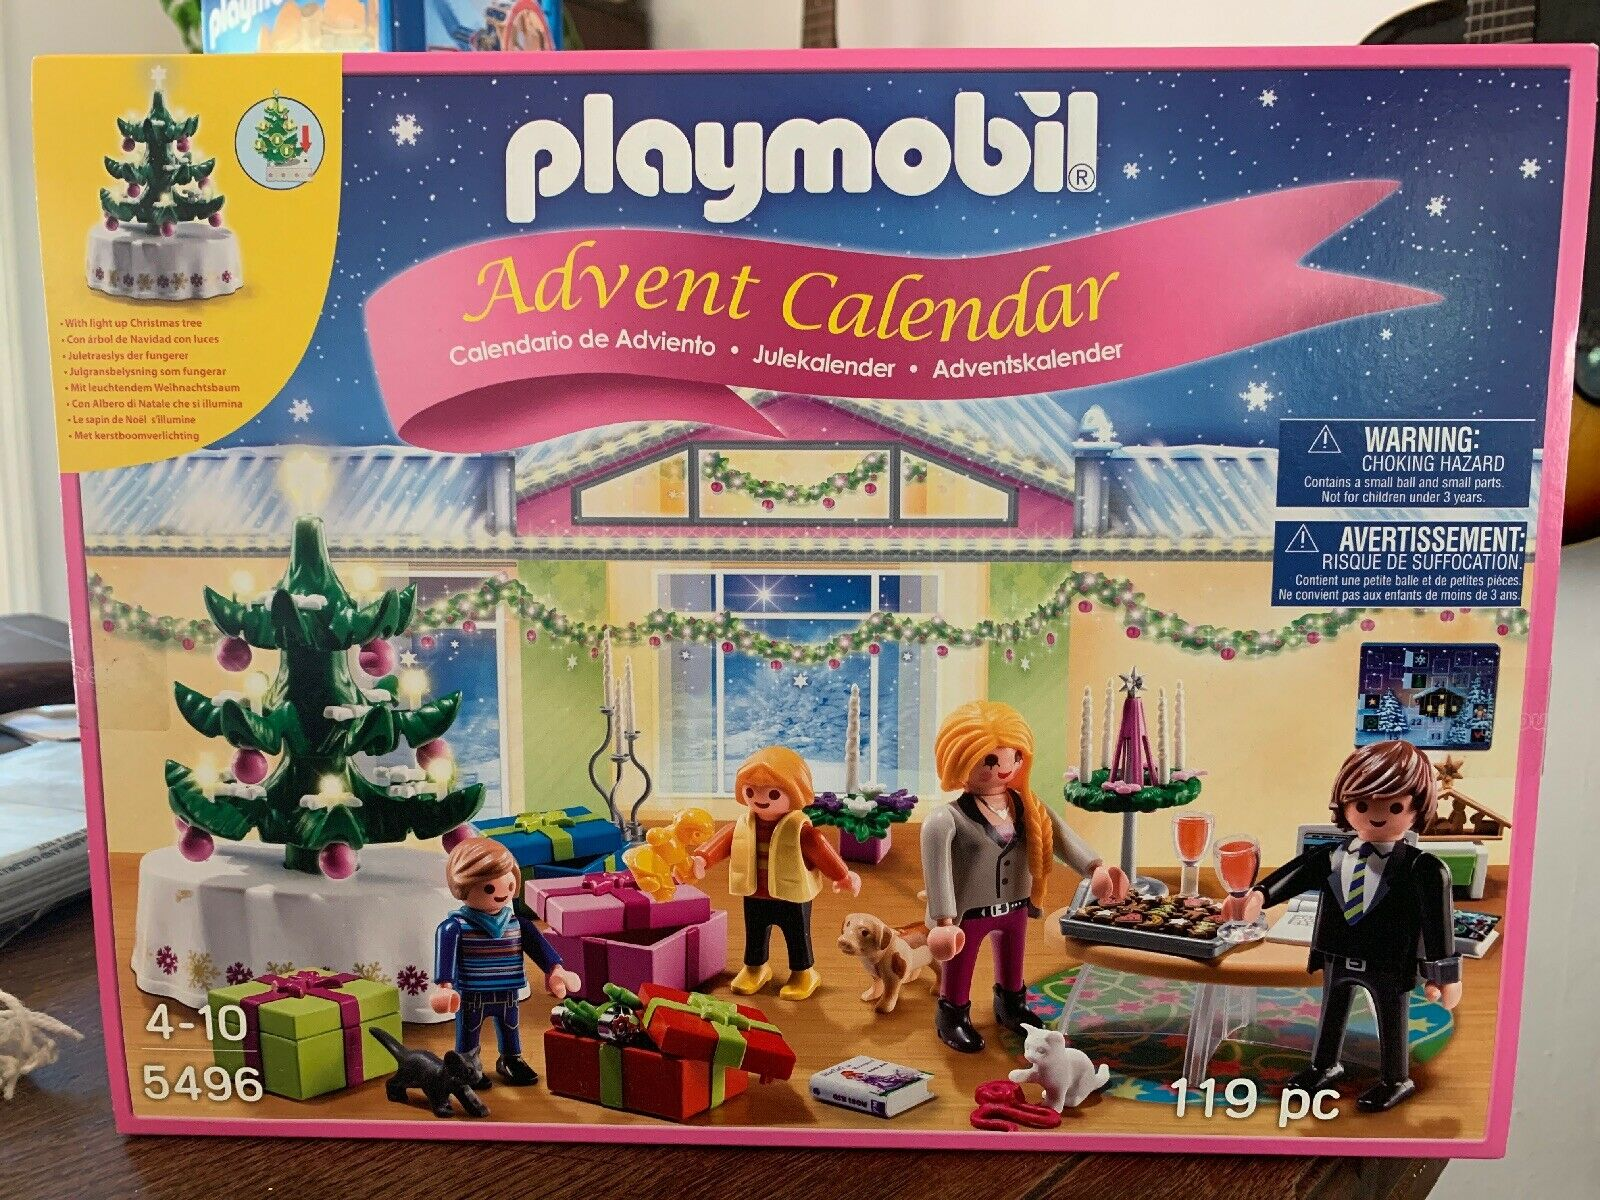 Advent Calendar Playmobil 5496-119 pc. +light up Christmas tree New Sealed